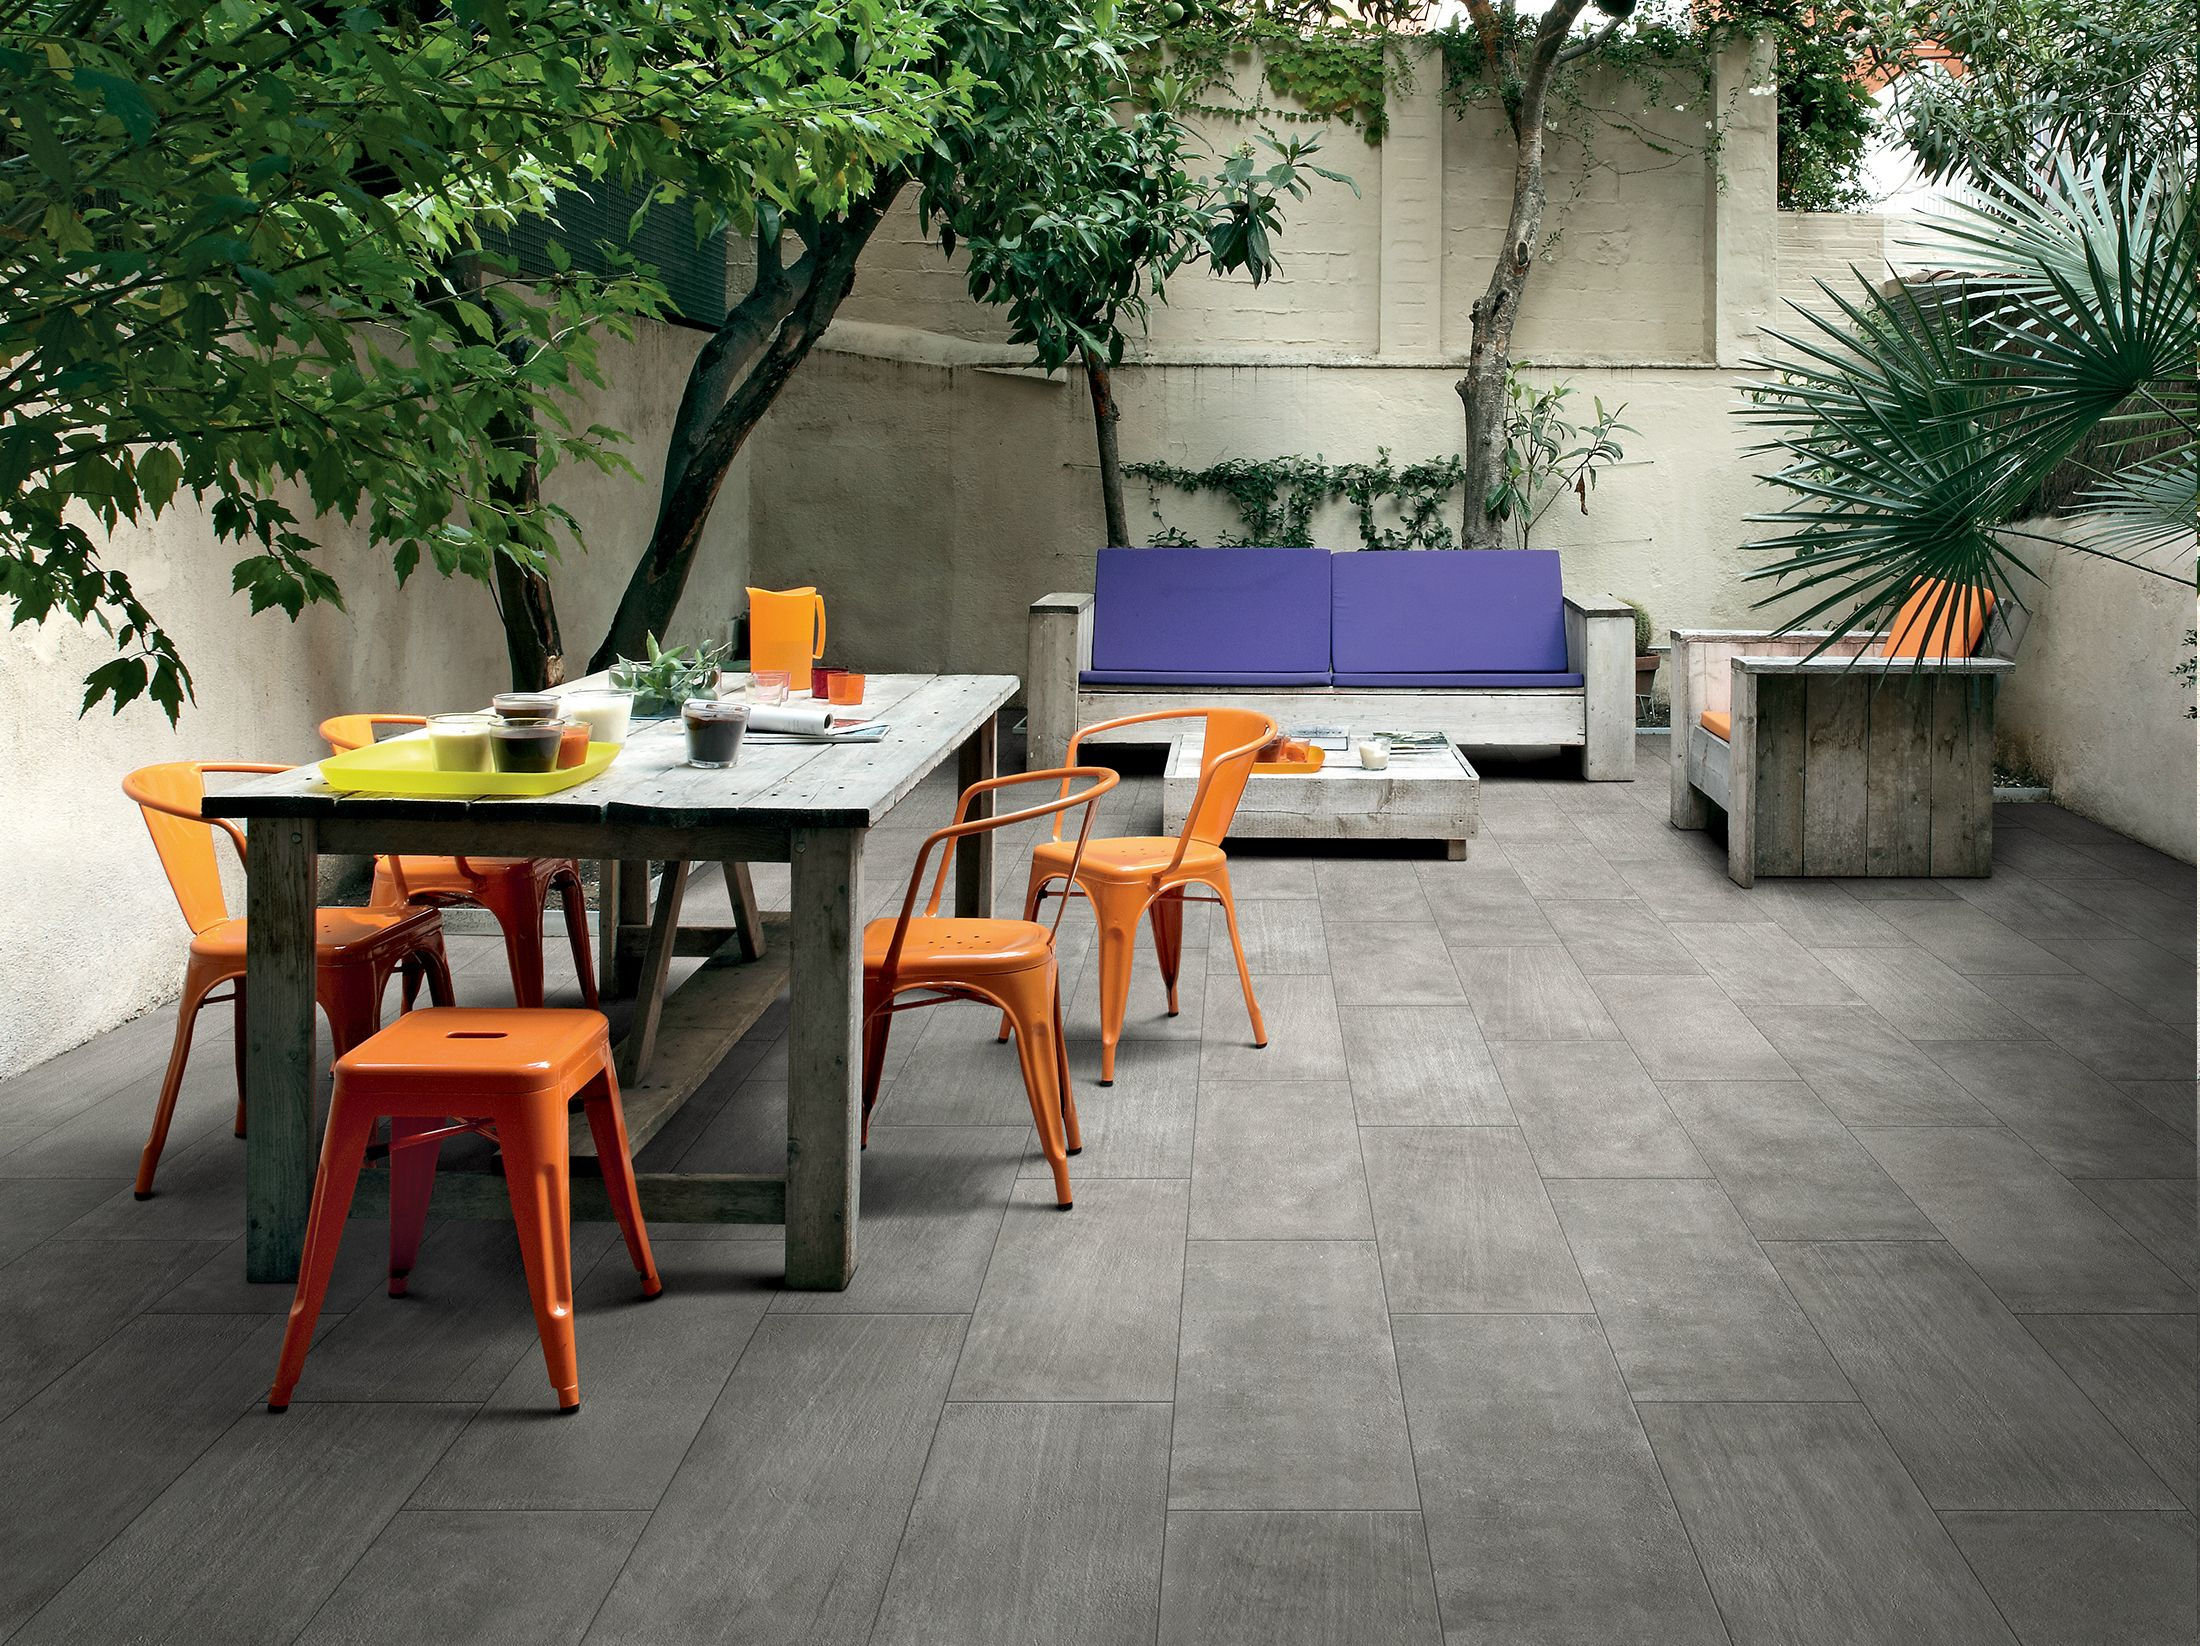 Outdoor Concrete Tile Flooring - Express